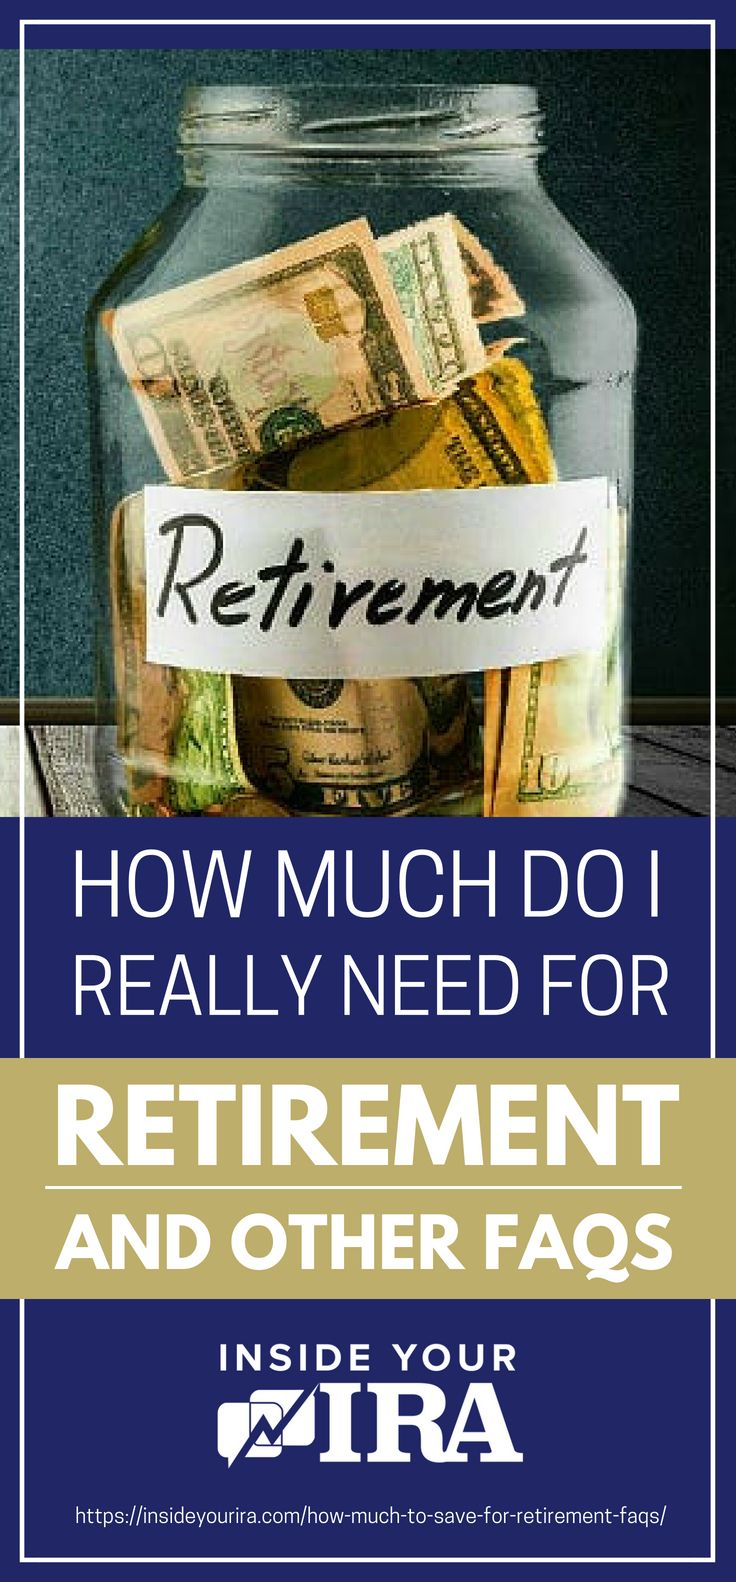 How Much Do I Really Need For Retirement? (And Other FAQs) | How Much To Save For Retirement | Inside Your IRA https://insideyourira.com/how-much-to-save-for-retirement-faqs/